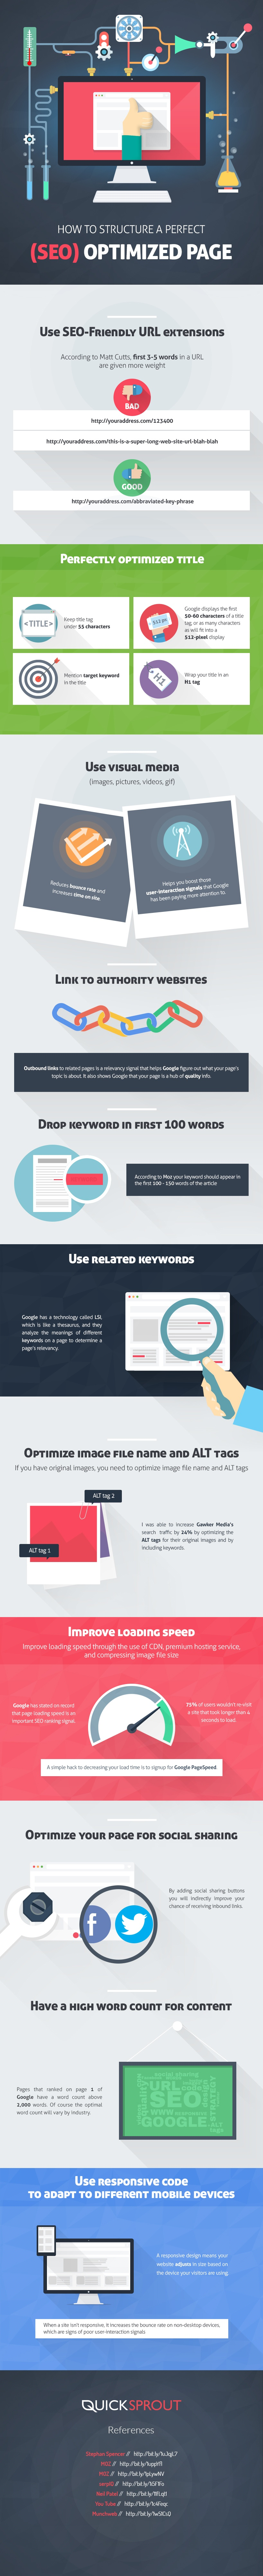 How to Structure a Perfect SEO Optimized Page